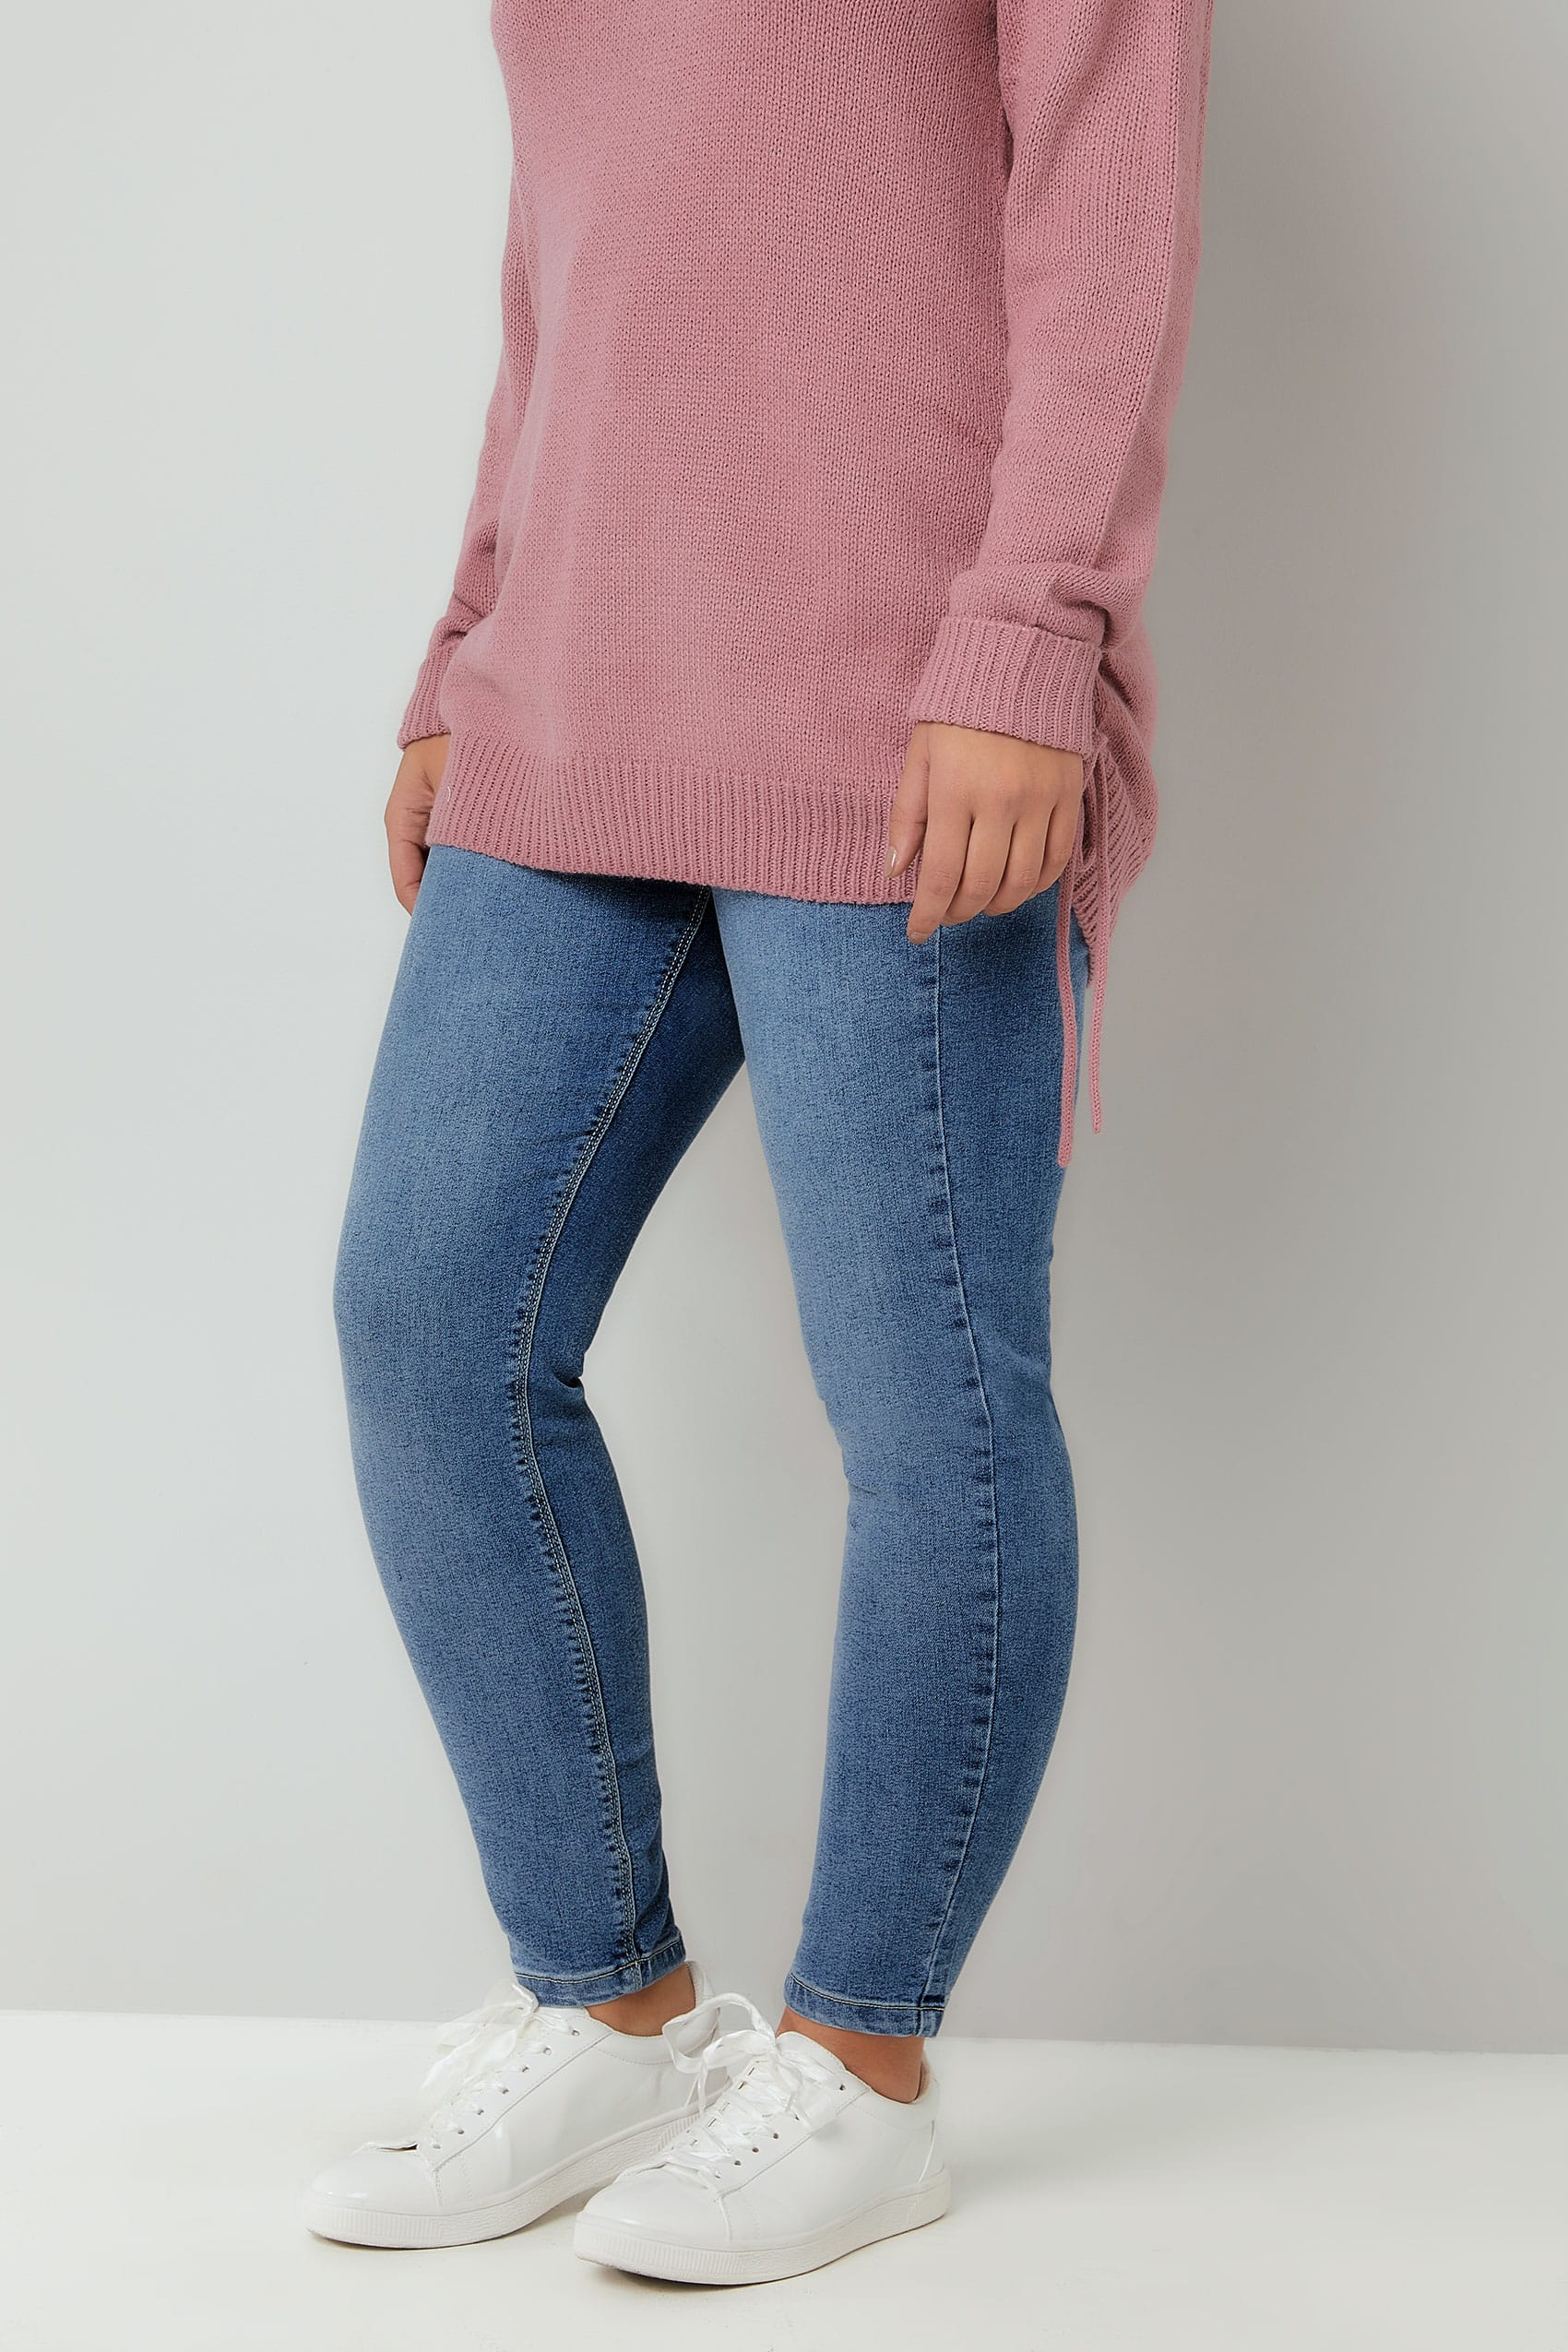 Get all kind of Brazilian women butt lifting jeans that lift your bottom. With these jeans leggings you can improve your curves and lift your butt.